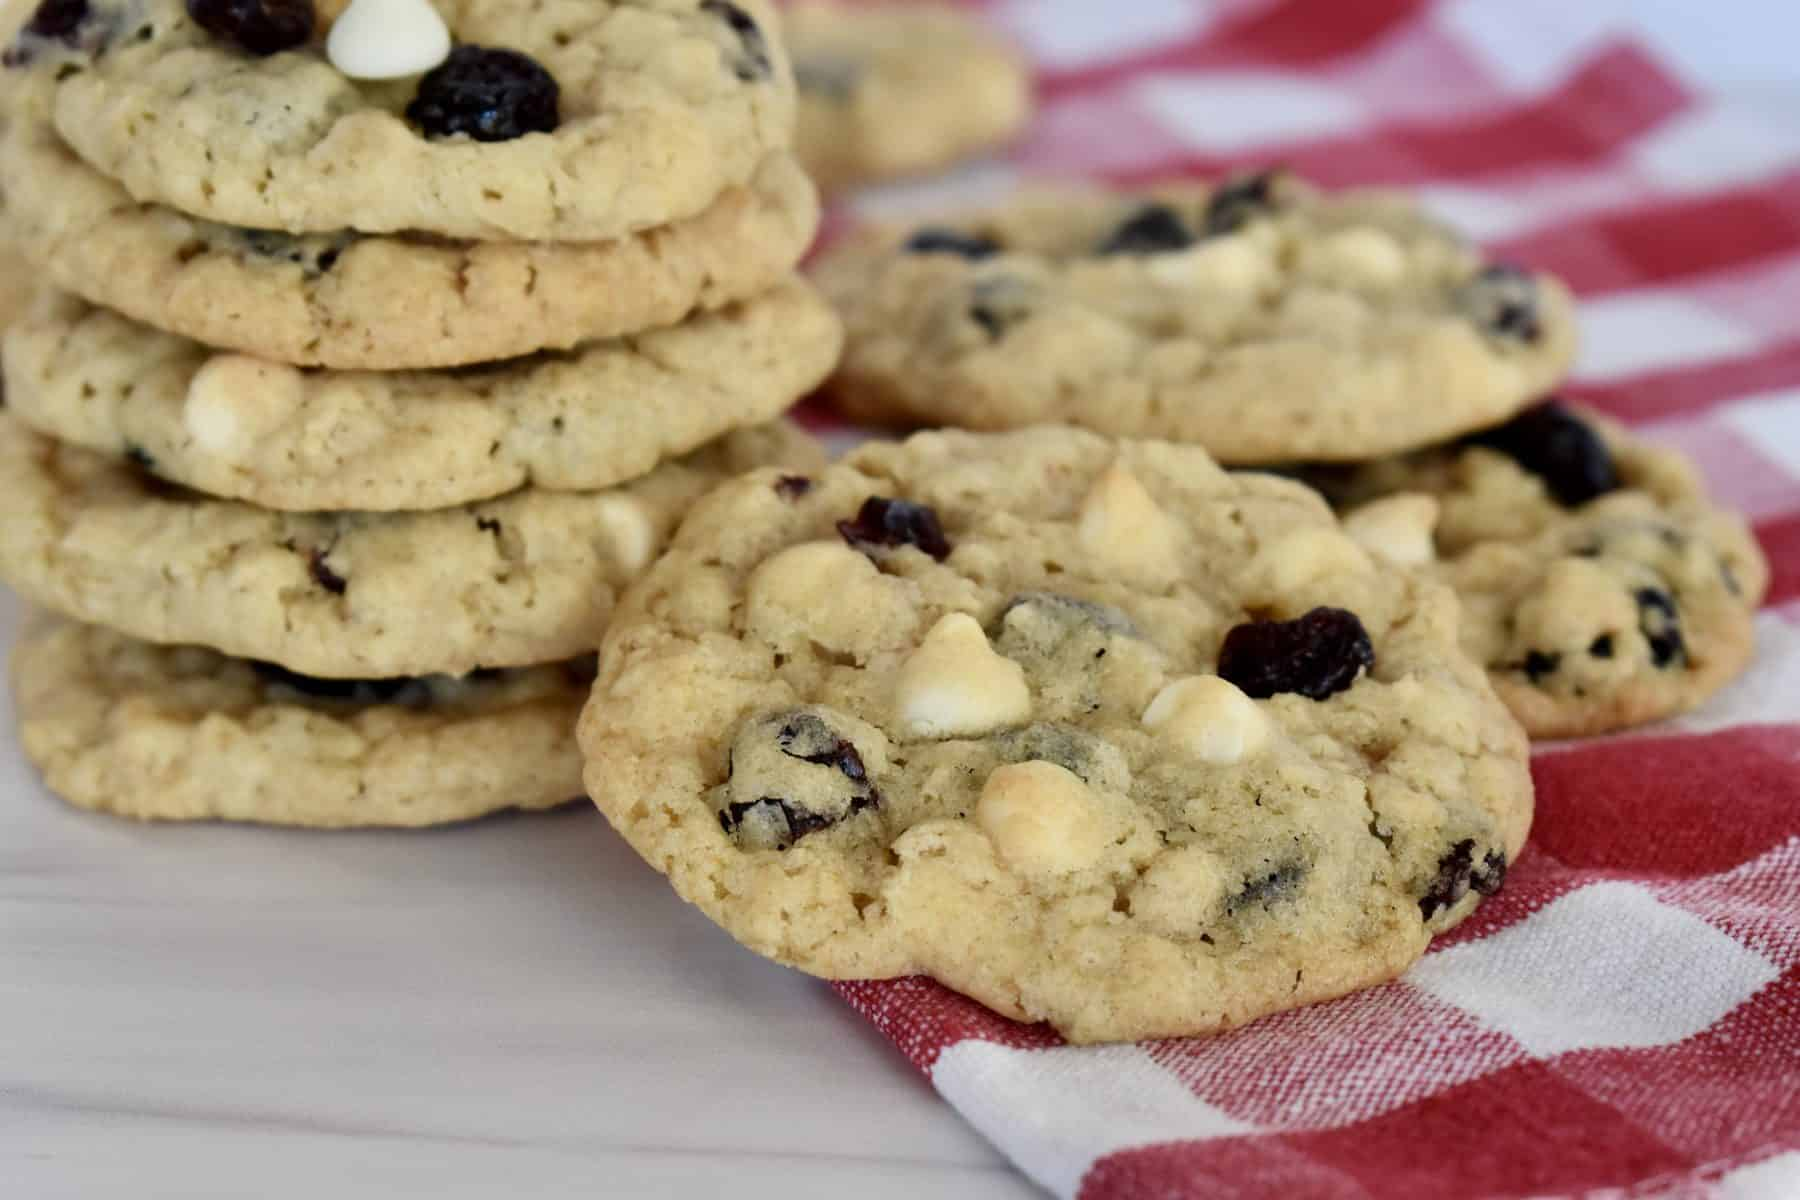 Cranberry White Chocolate Cookie on a checkered napkin.